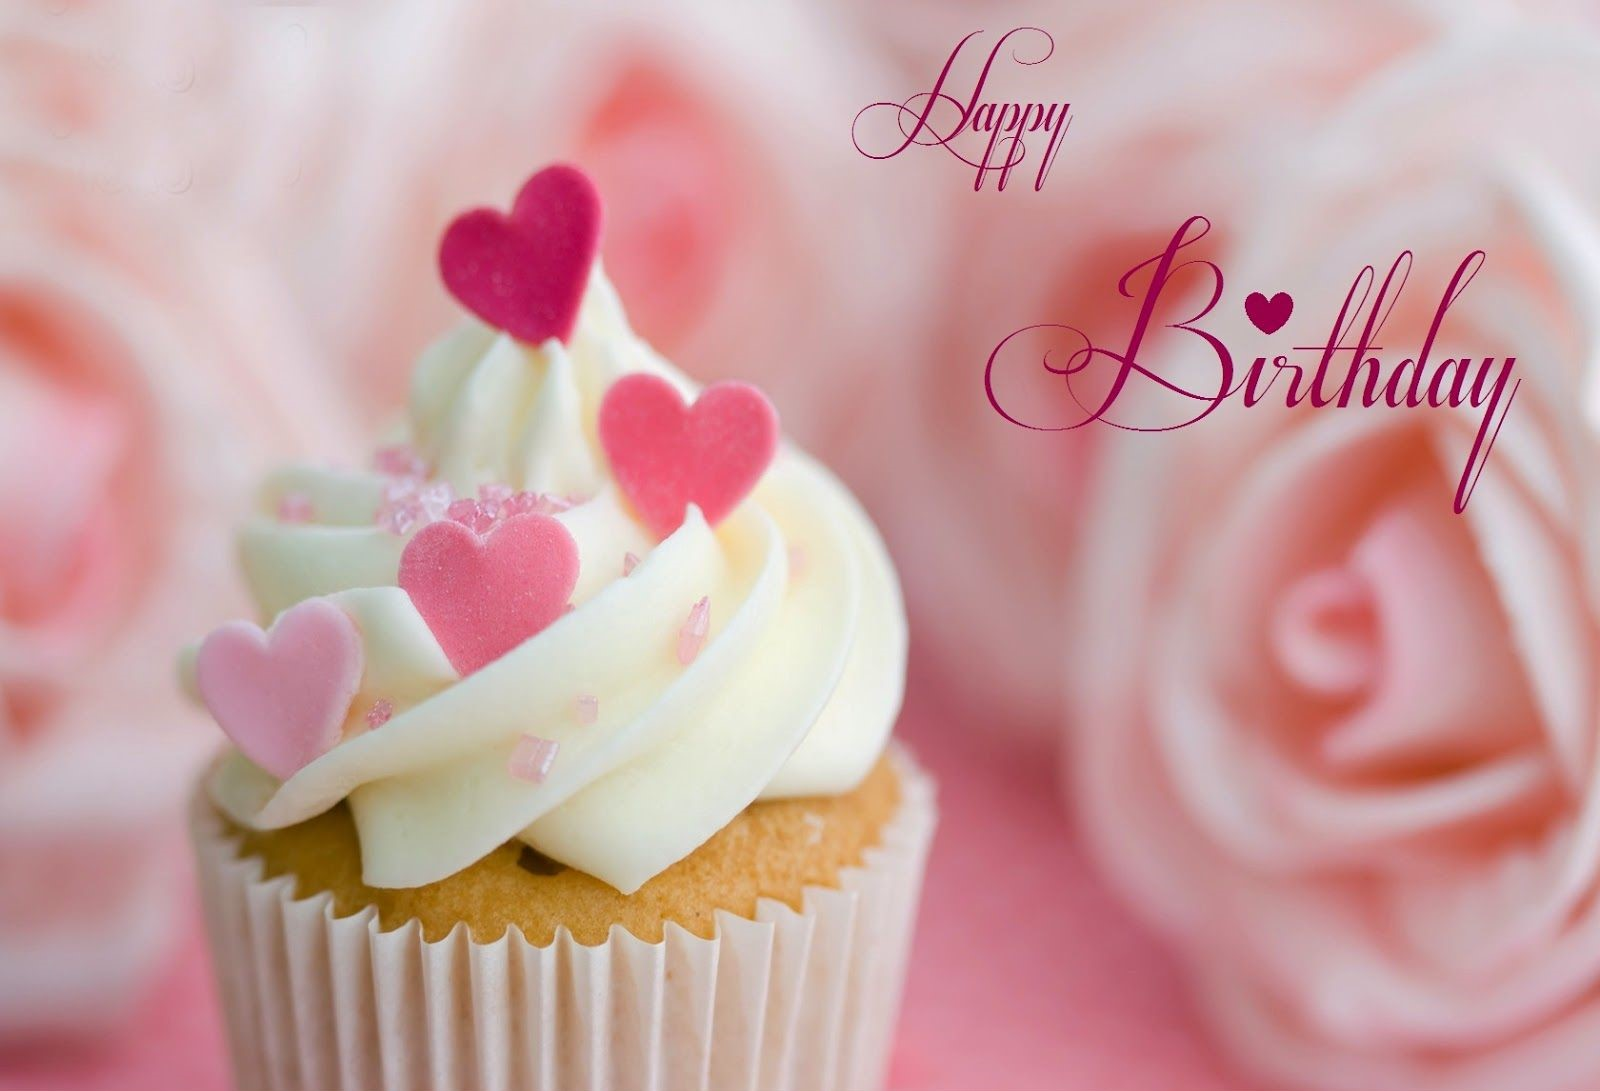 birthday wishes in hd images ; the-collection-of-romantic-and-unforgettable-birthday-wishes-for-boyfriend-1-1